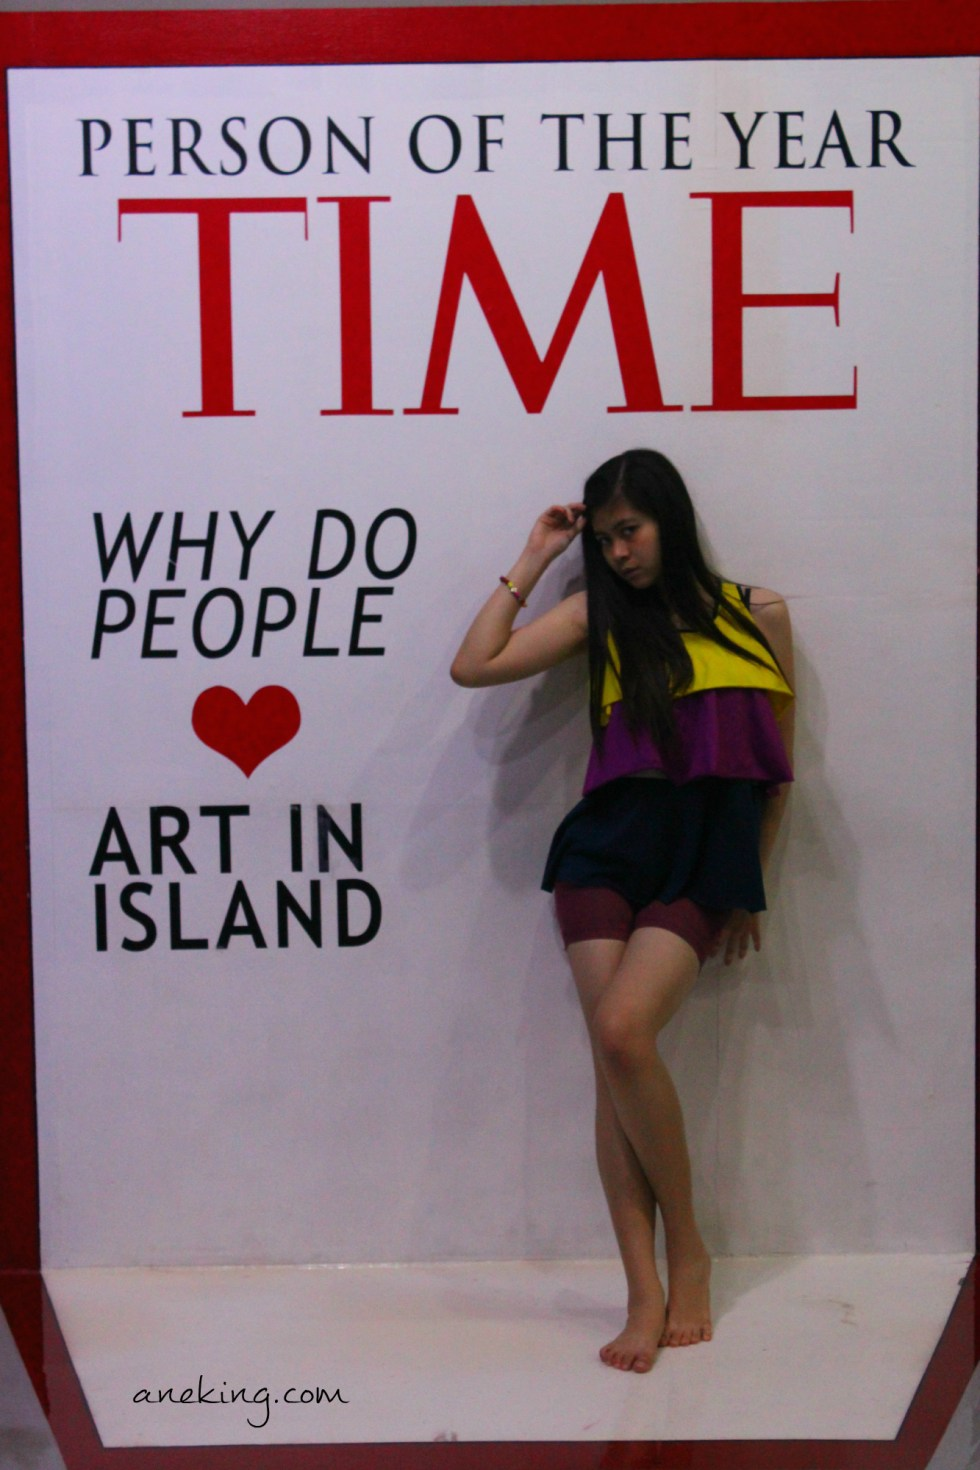 time magazine in art in island